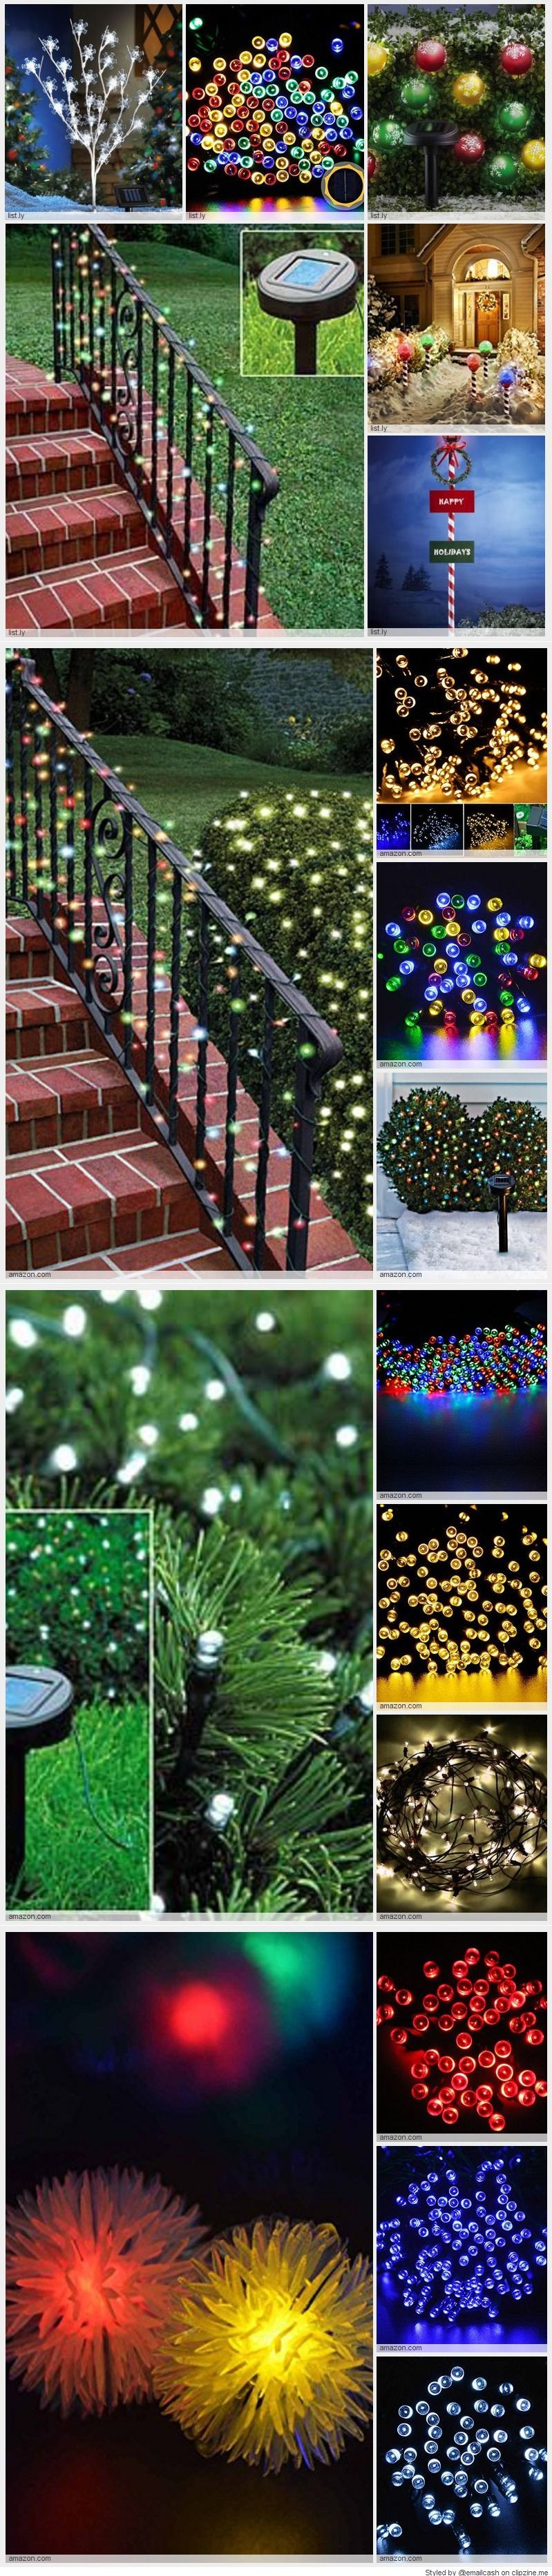 then check out the videos that we found that show you how to use your solar powered christmas lights to really brighten up your outdoor